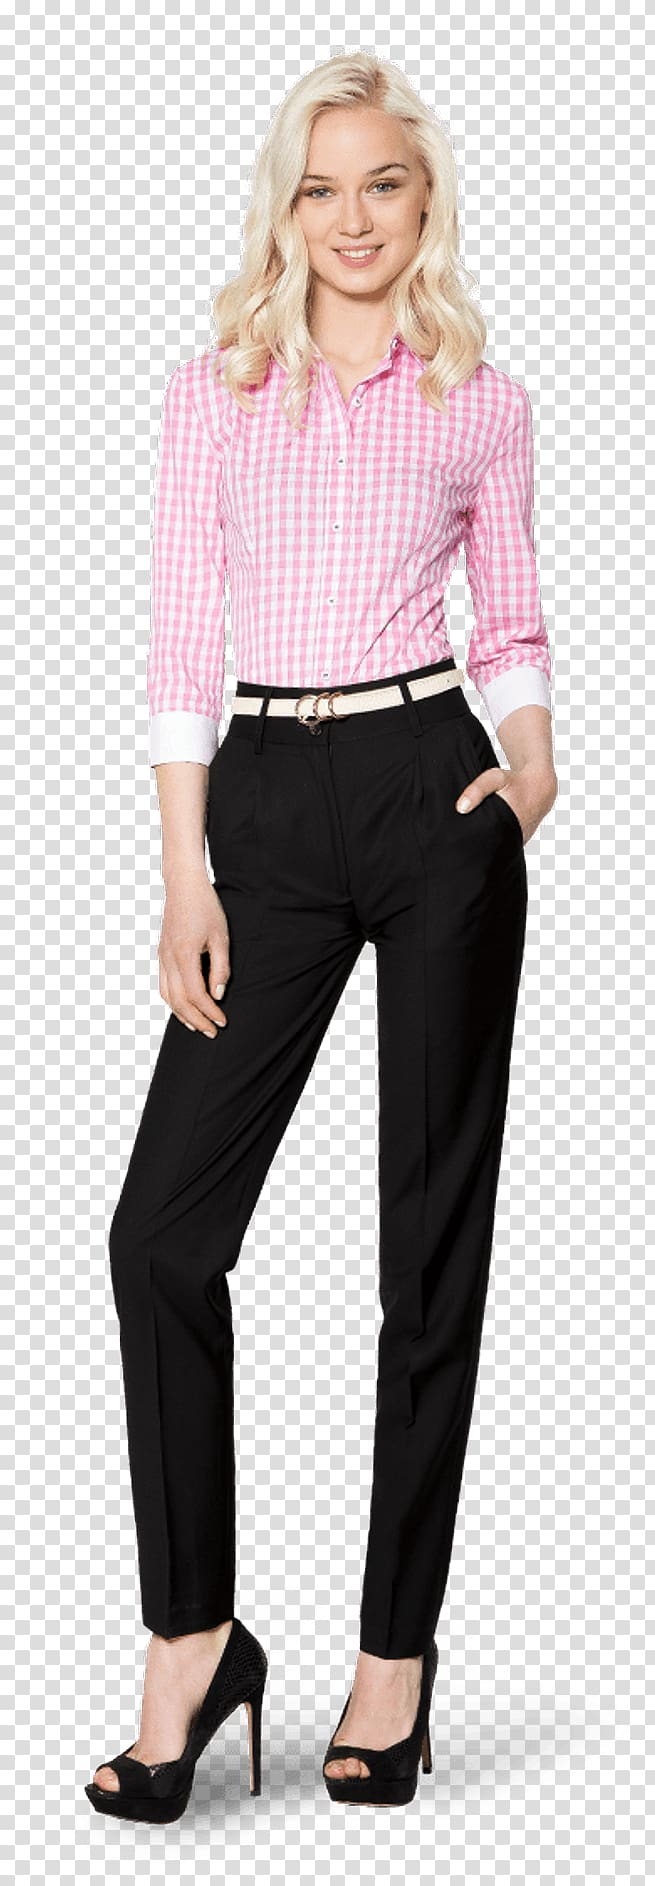 Blouse Sleeve Pants Dress shirt, corporate attire women.